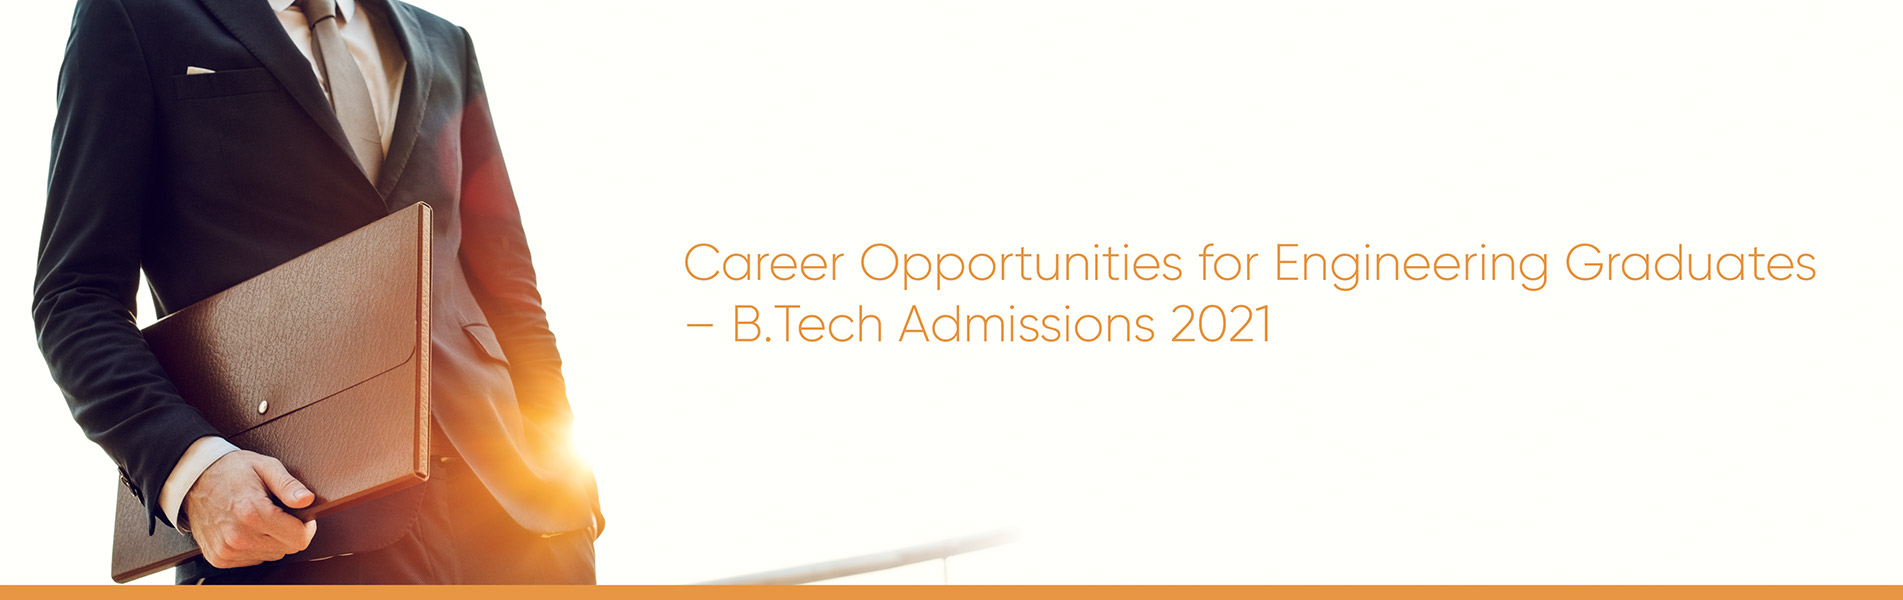 Career Opportunities, Engineering graduates, BTech admissions 2021